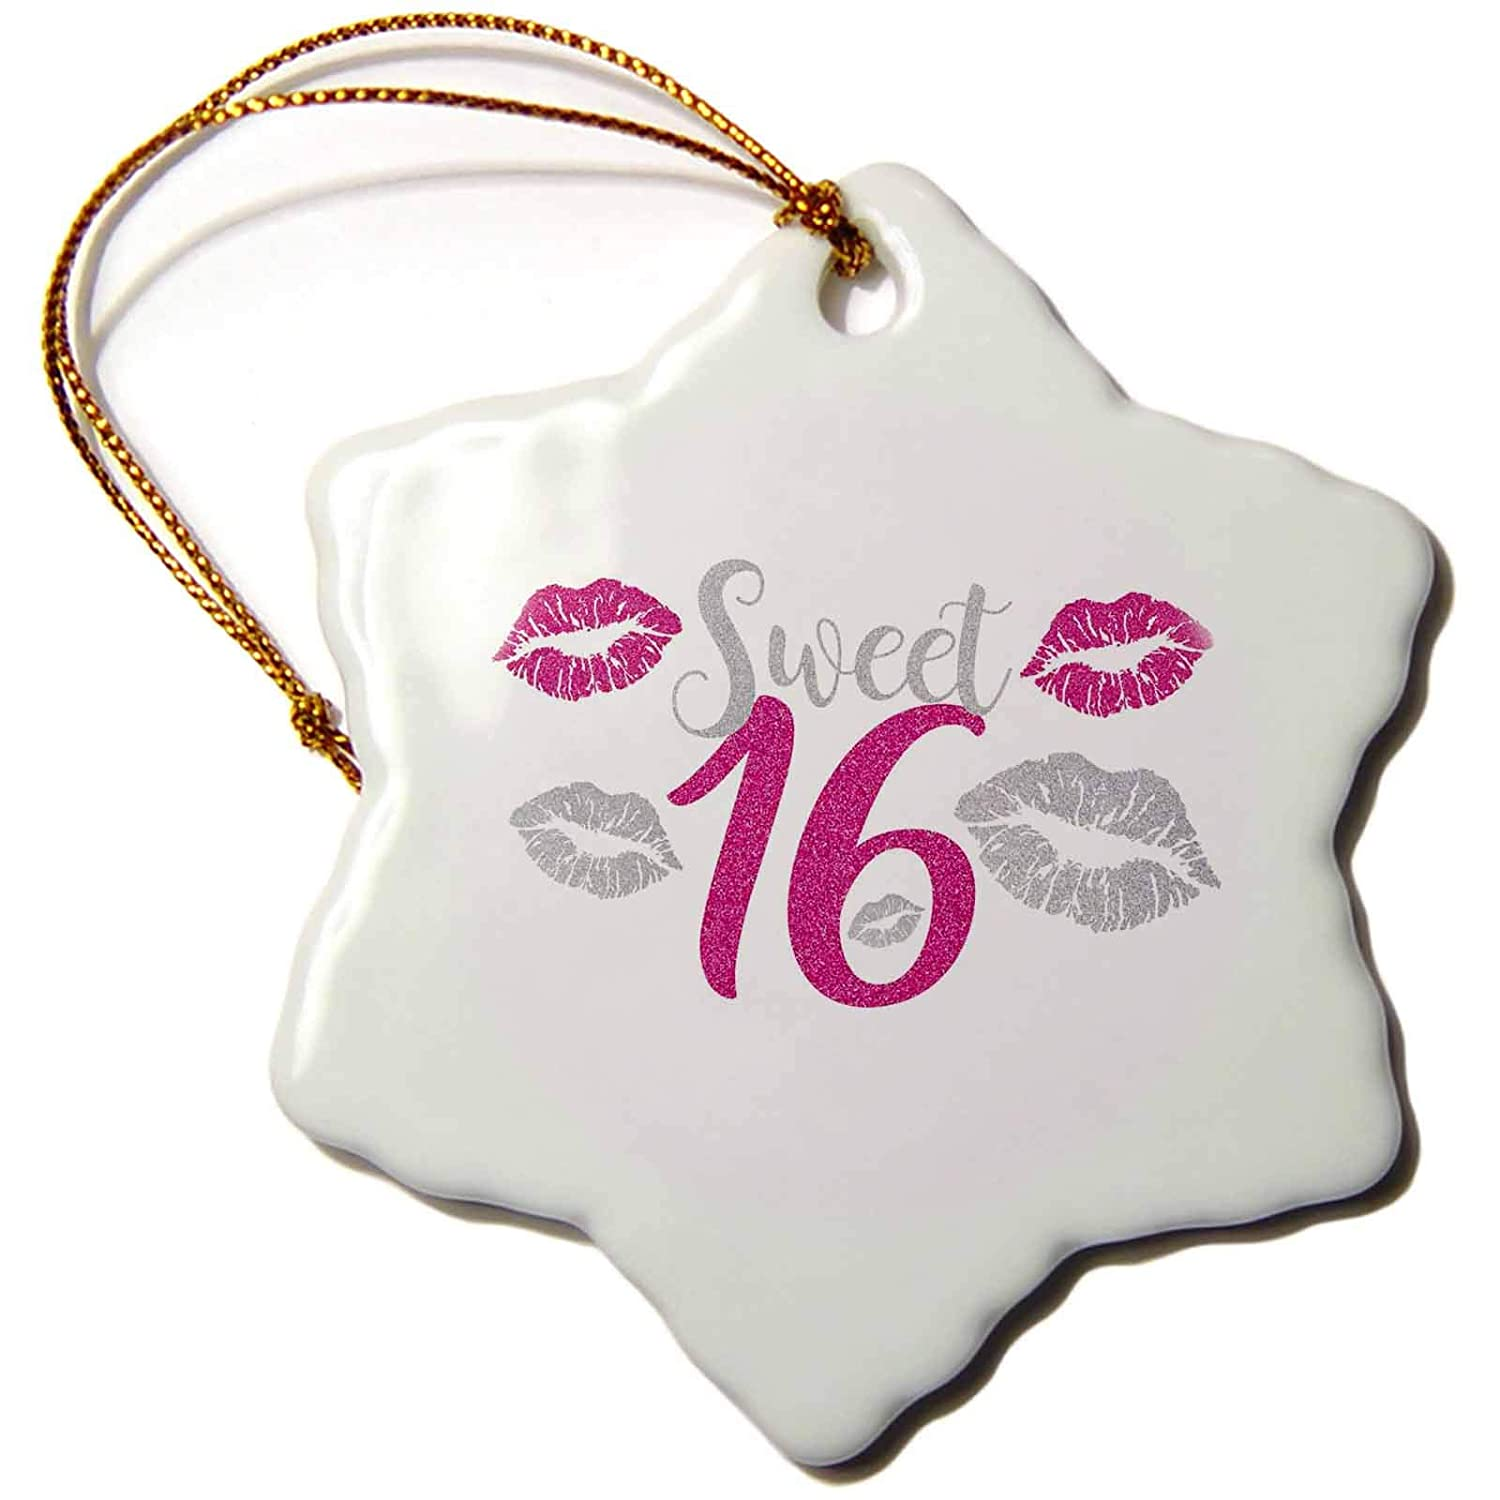 3dRosePurple and Silver Kisses for Sweet Sixteen Birthday Birth Gift Snowflake Ornament 3